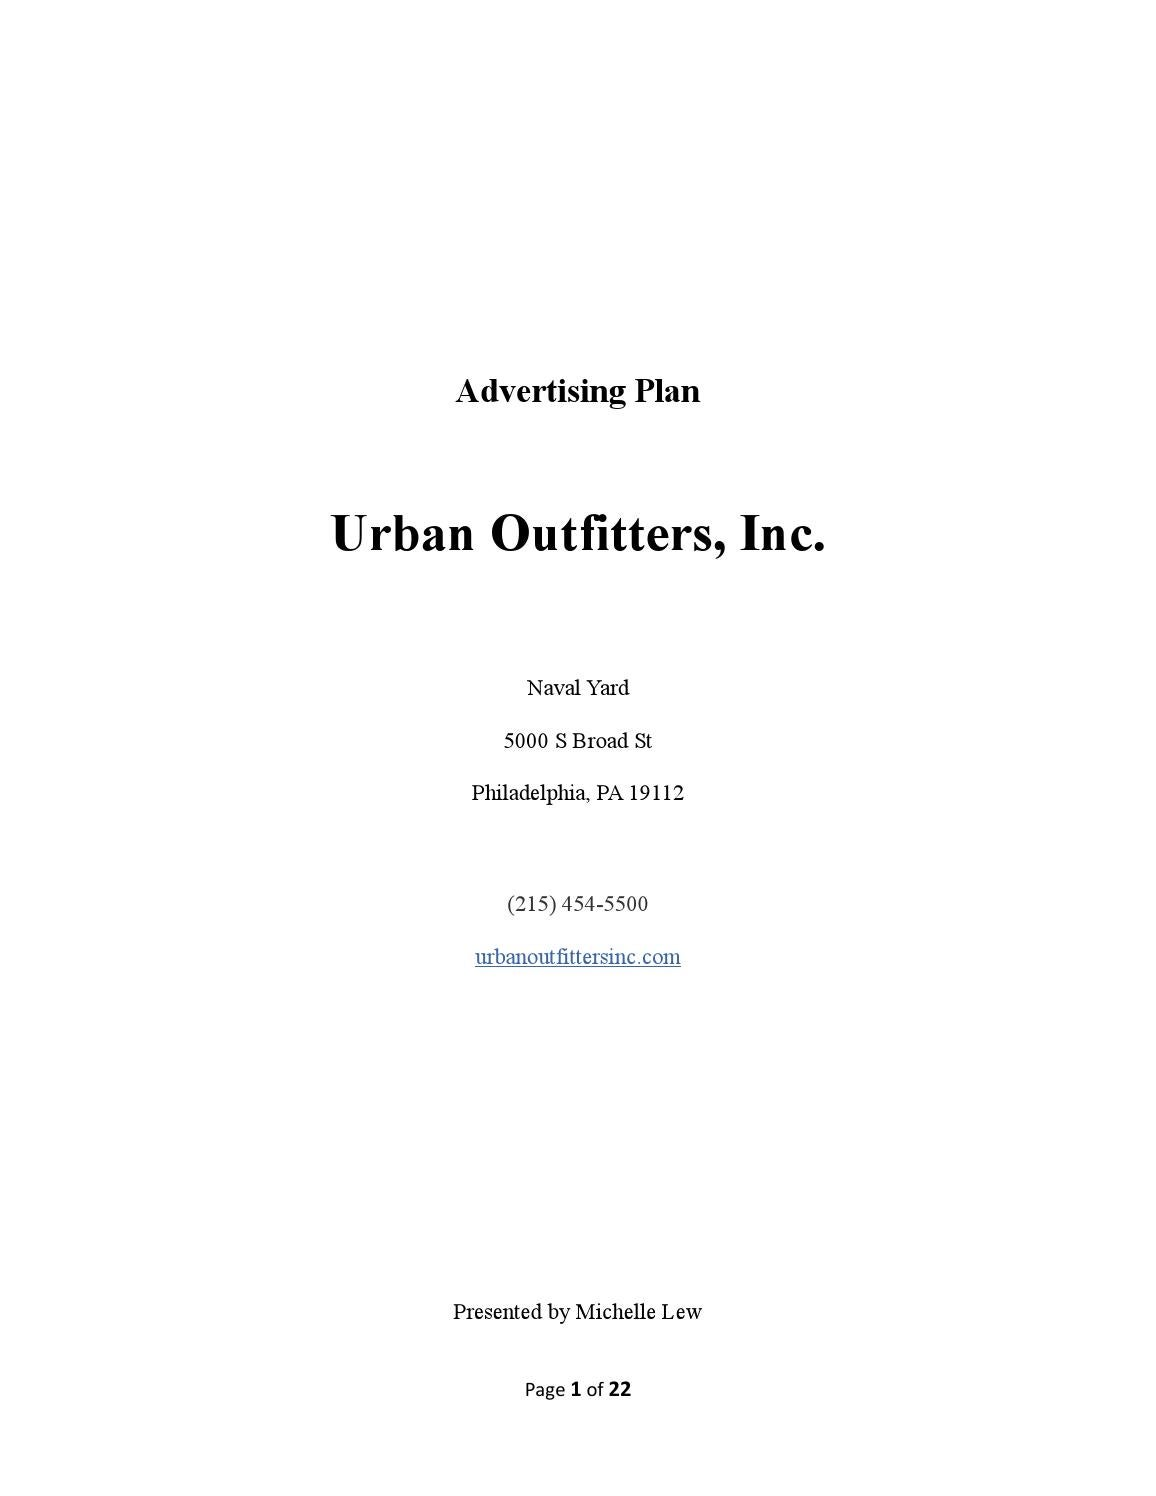 urban outfitters advertising plan by michelle lew issuu – Urban Outfitters Business Plan